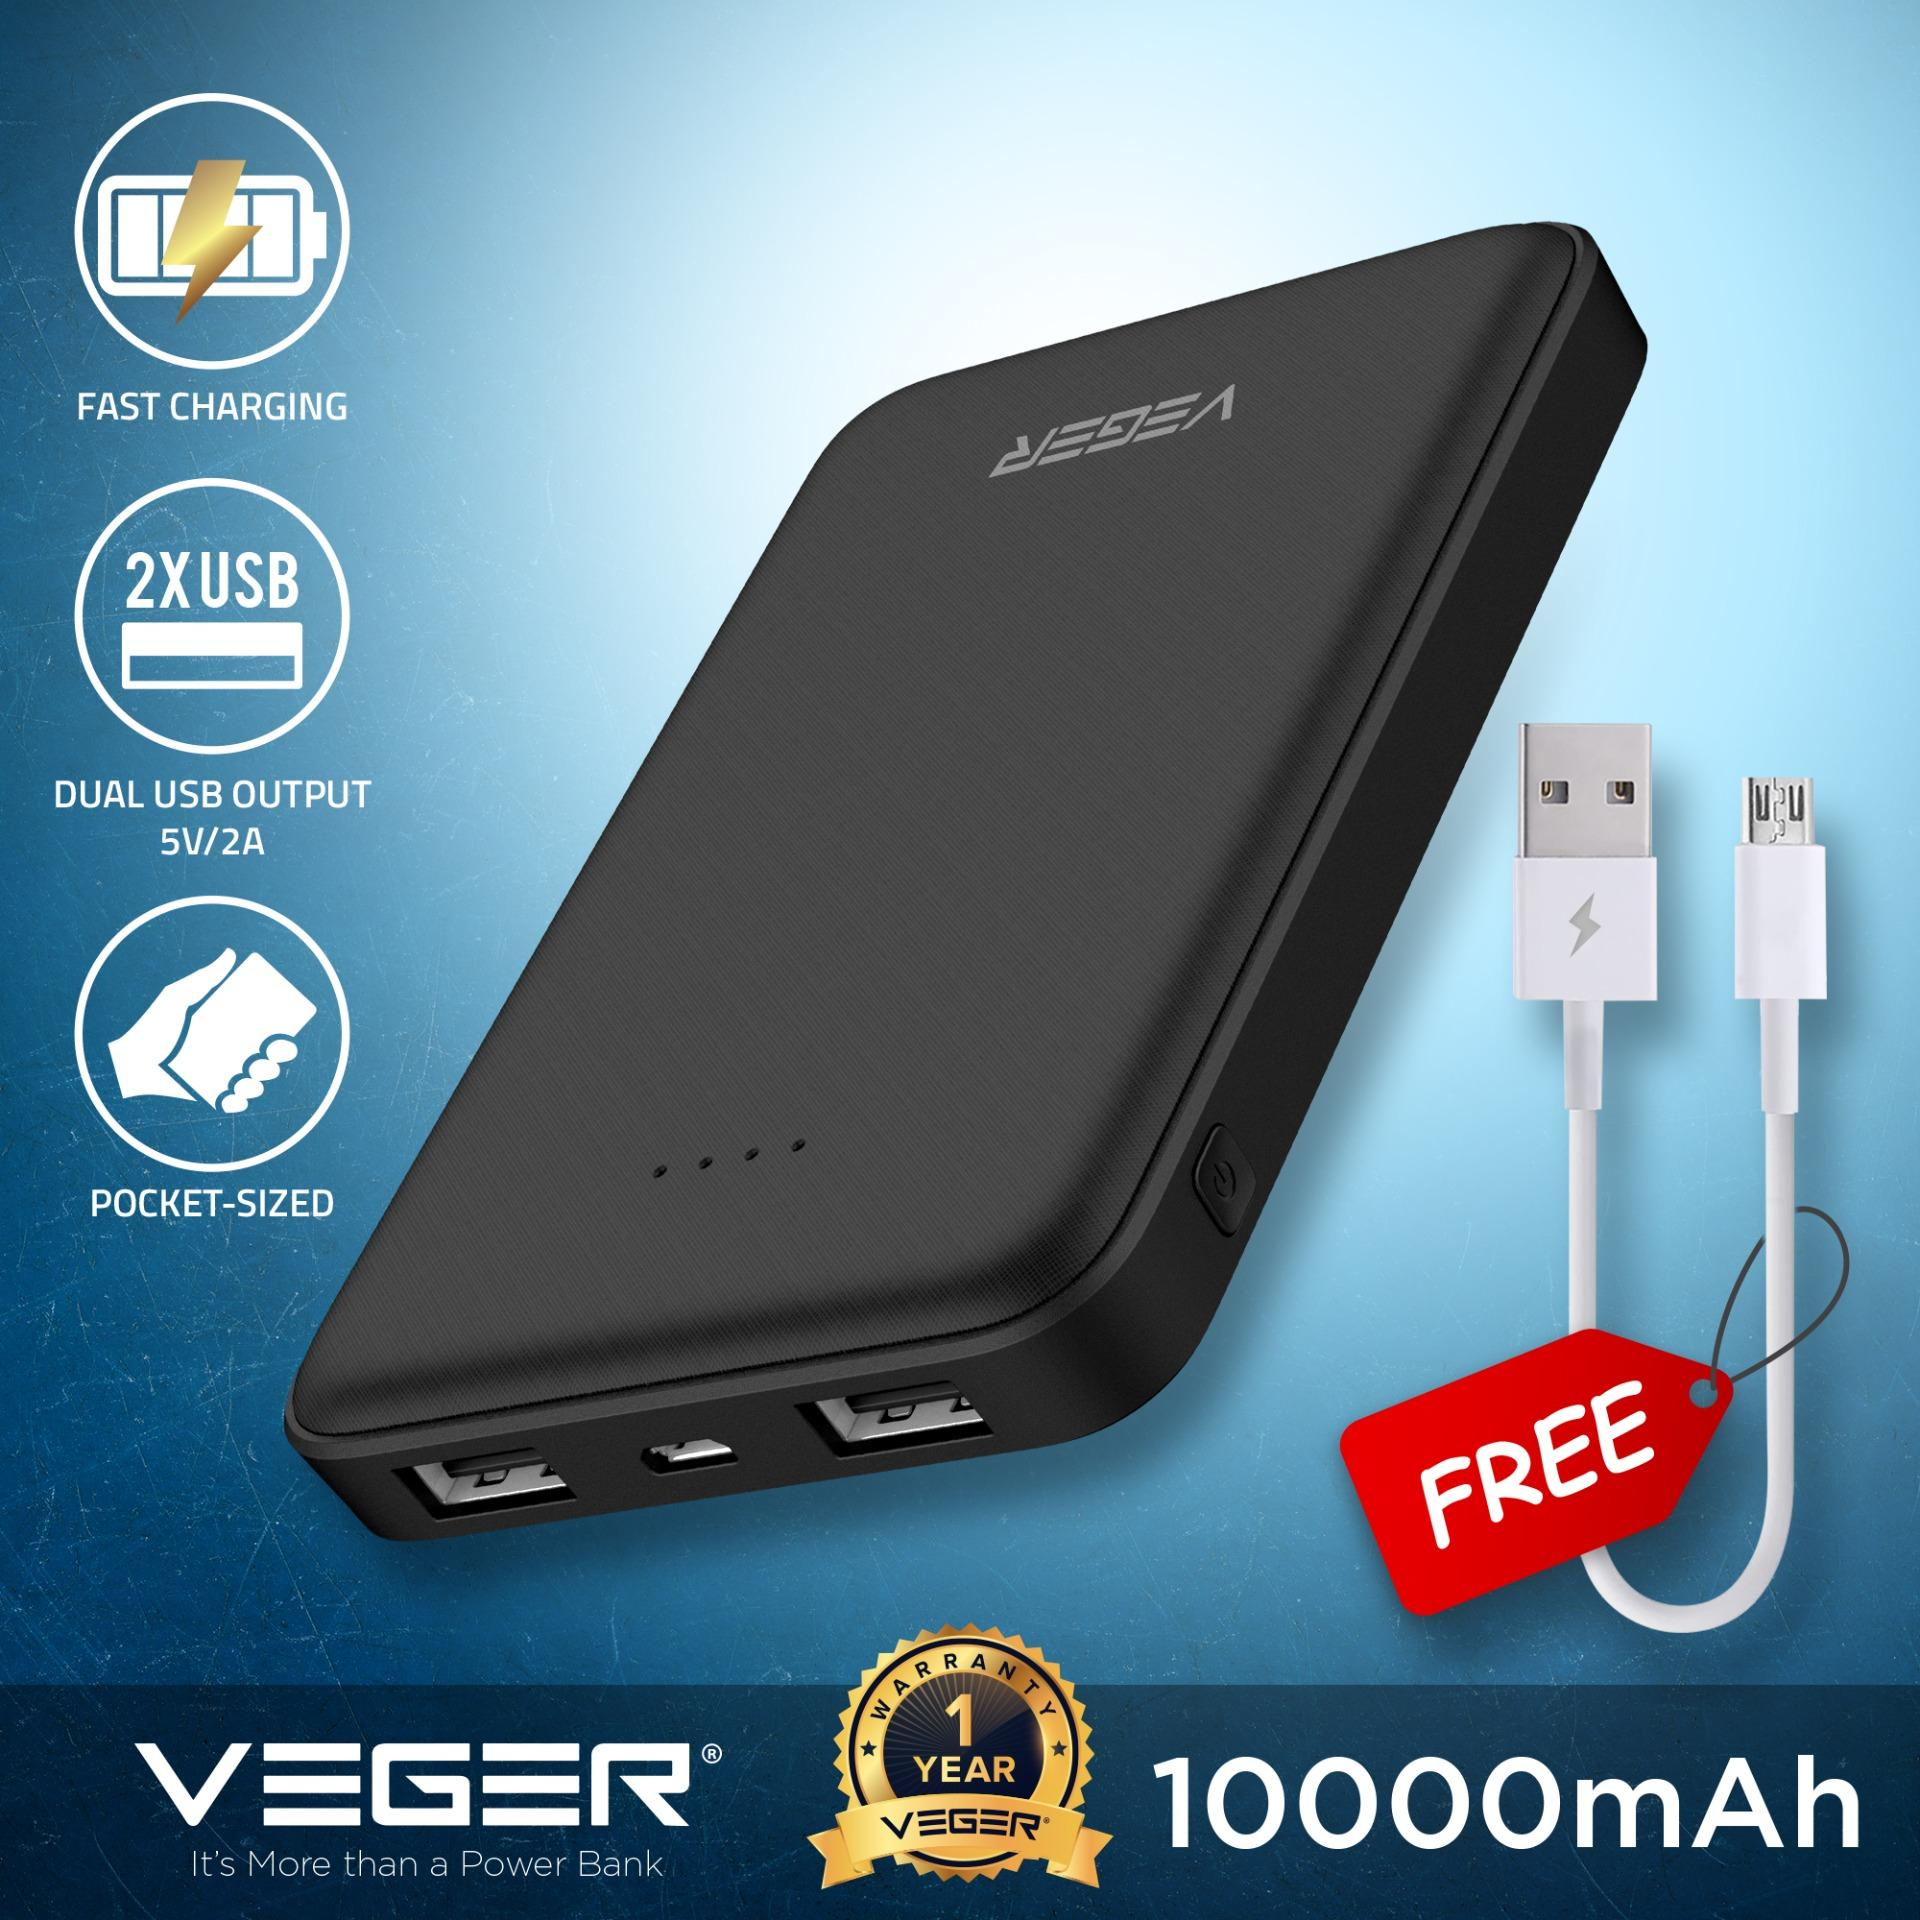 VEGER VP1018 10000mAh Power Bank Slim Pocket Style Mini Powerbank Micro USB  2 0A Input 2 0A Dual USB Output External Battery Compact Portable Charger